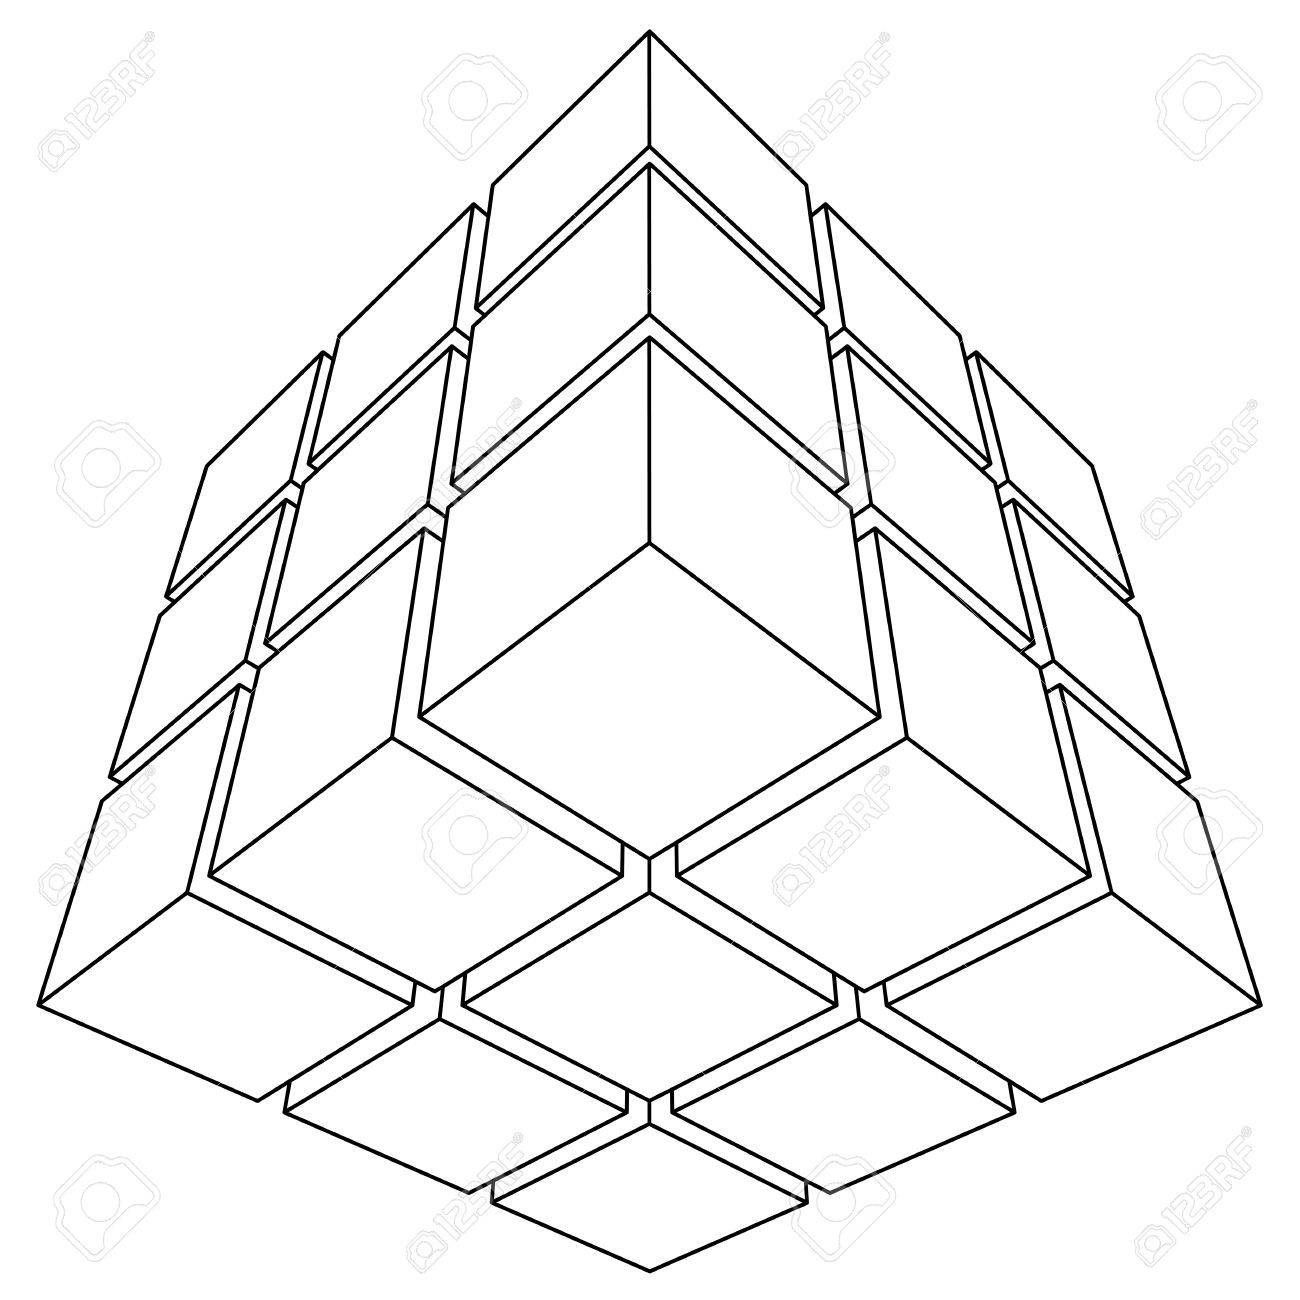 Wire mesh drawing at getdrawings free for personal use wire